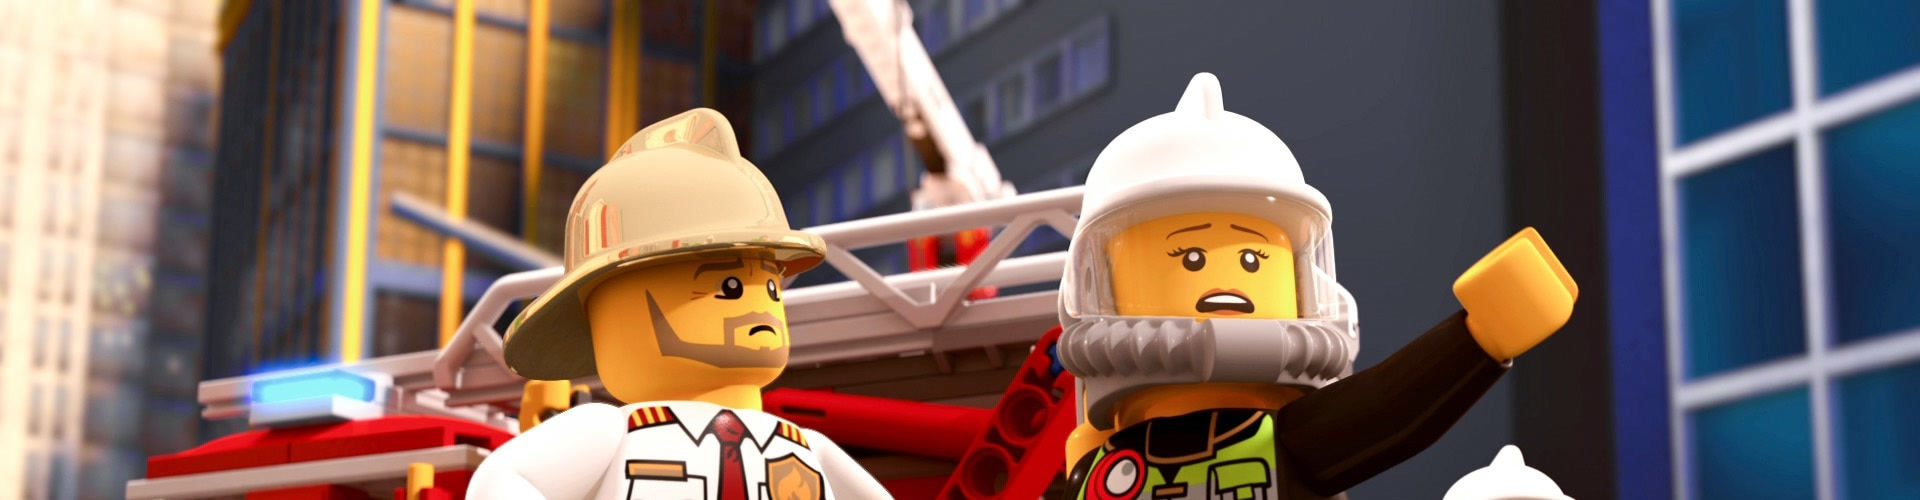 Watch LEGO City Online